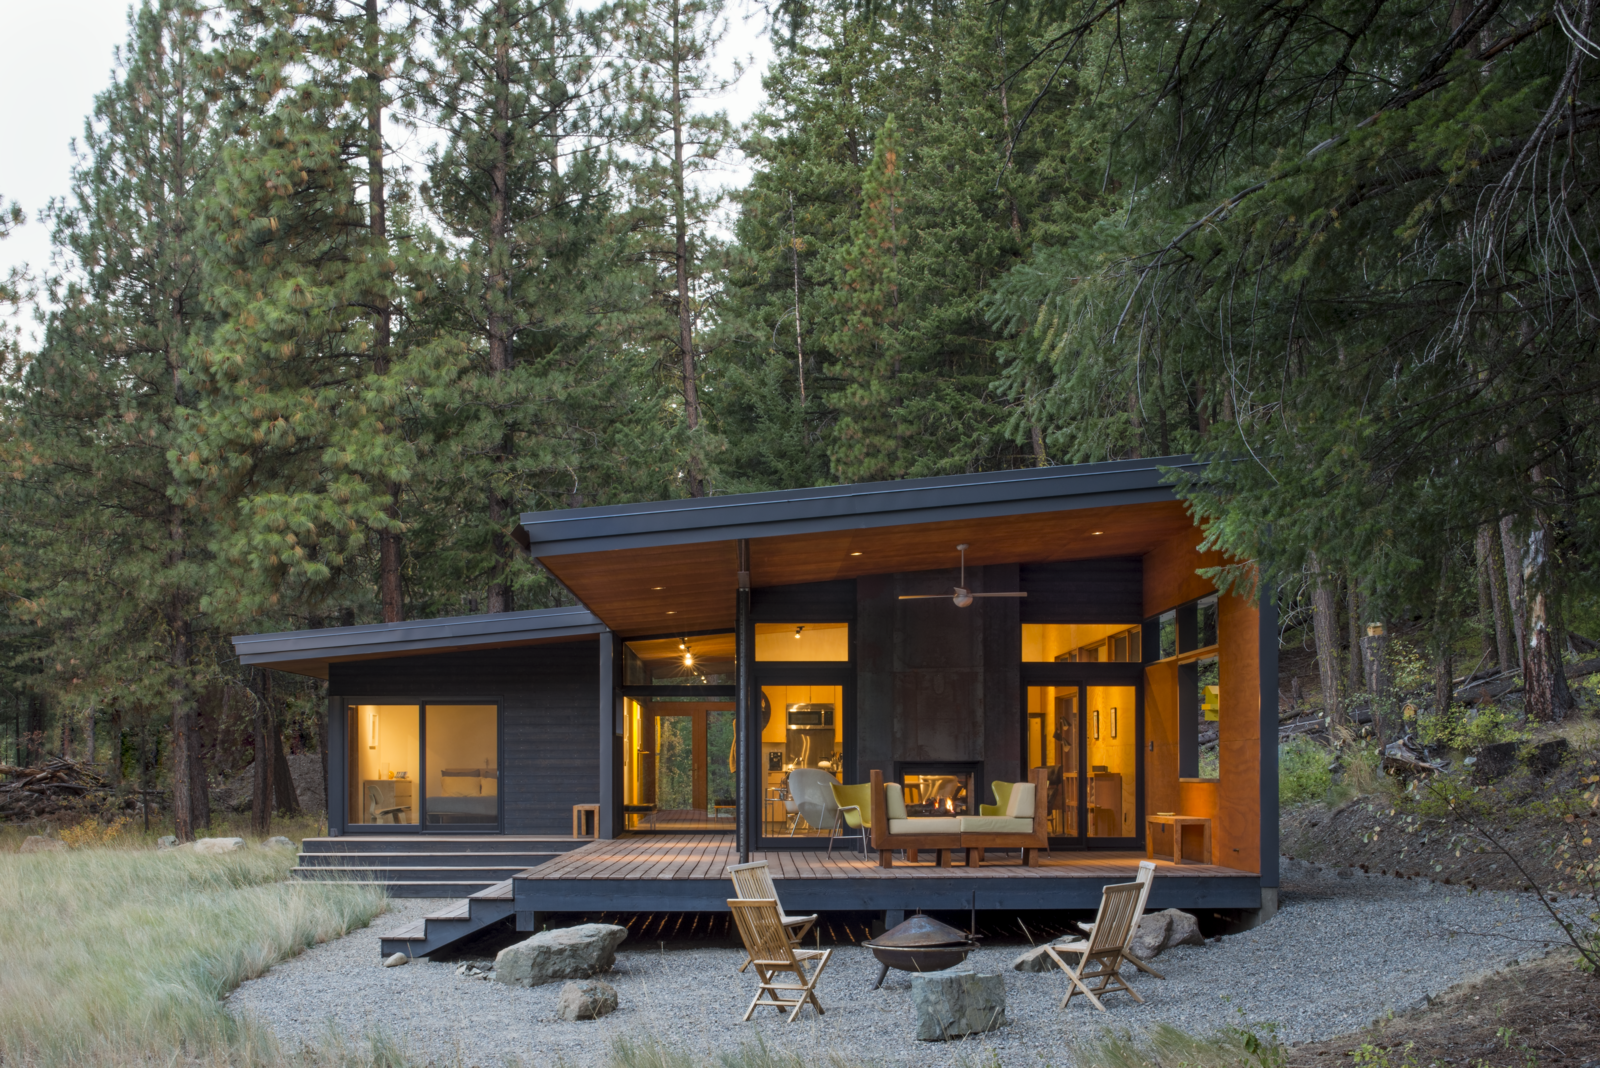 A Lean Cabin in Washington Dismantles the Indoor/Outdoor Divide - Photo 2 of 10